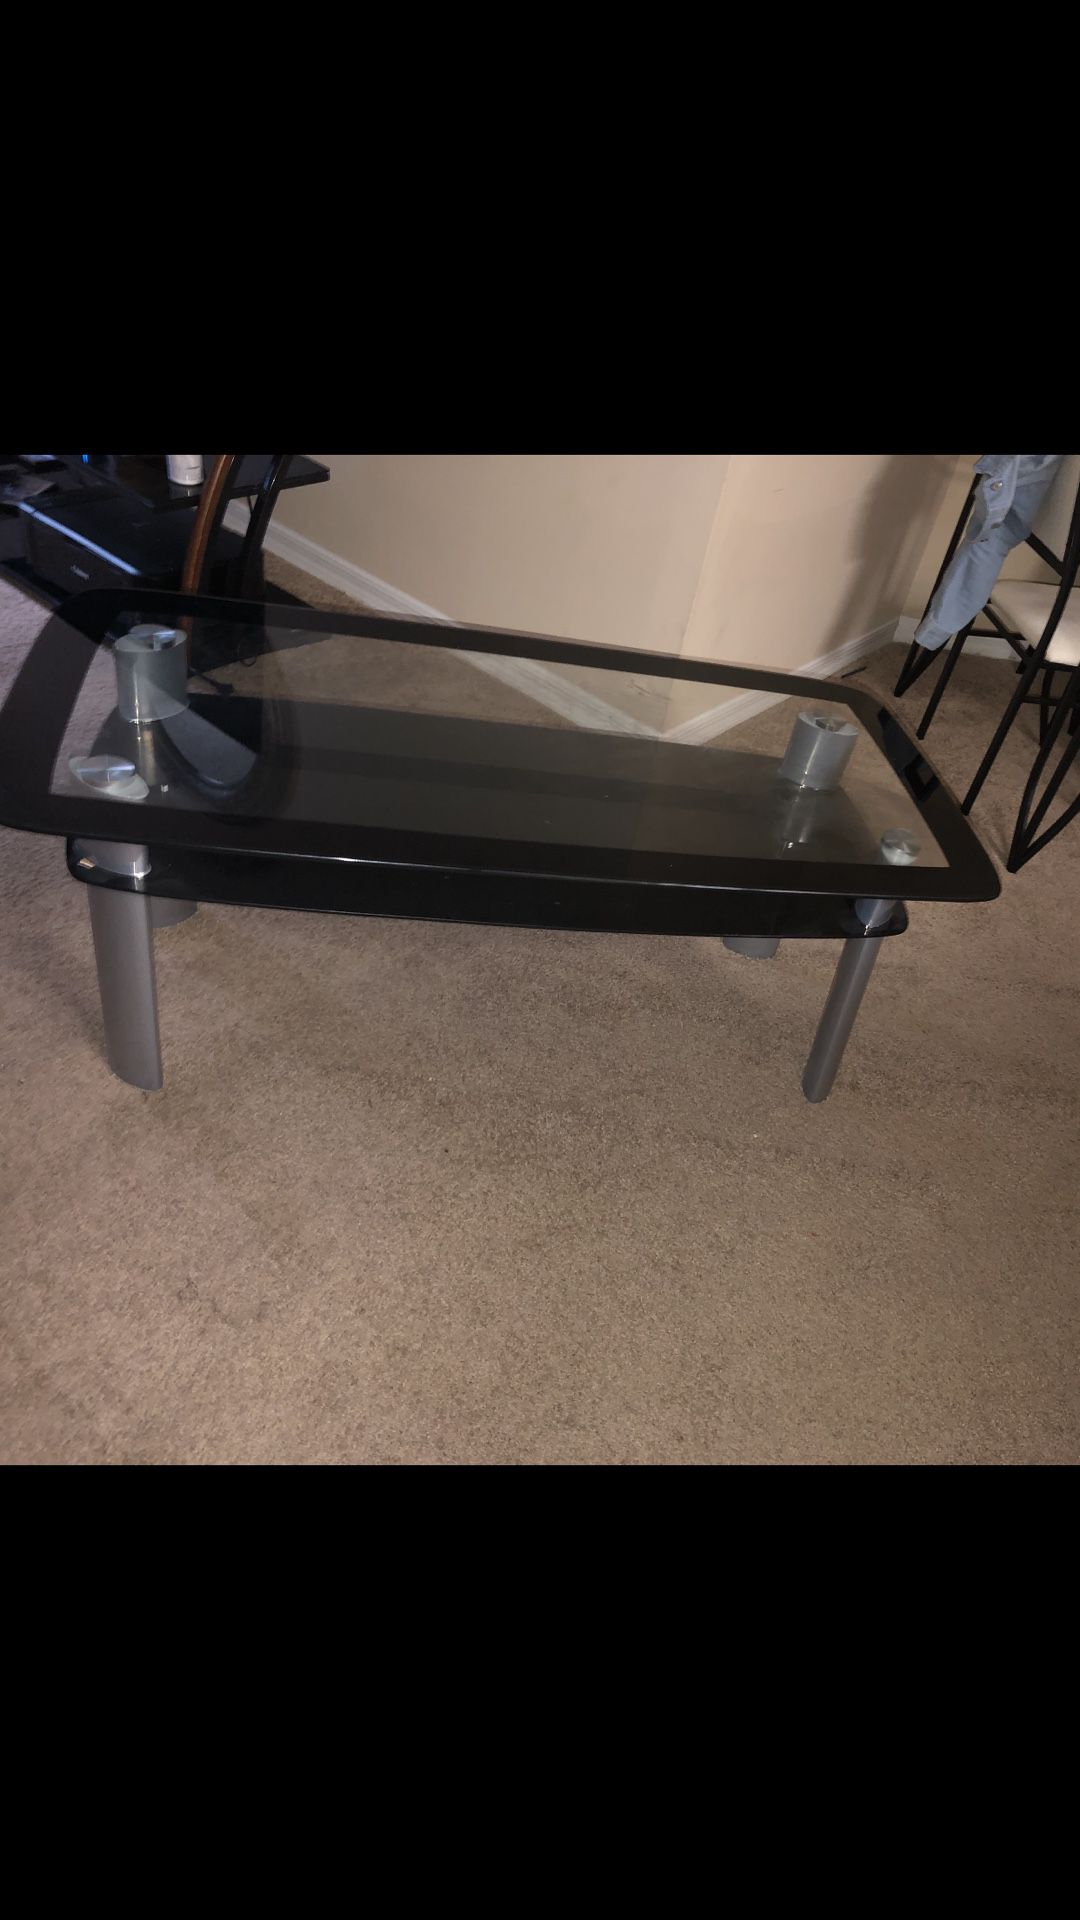 DOUBLE GLASS TABLE!!! Silver legs !